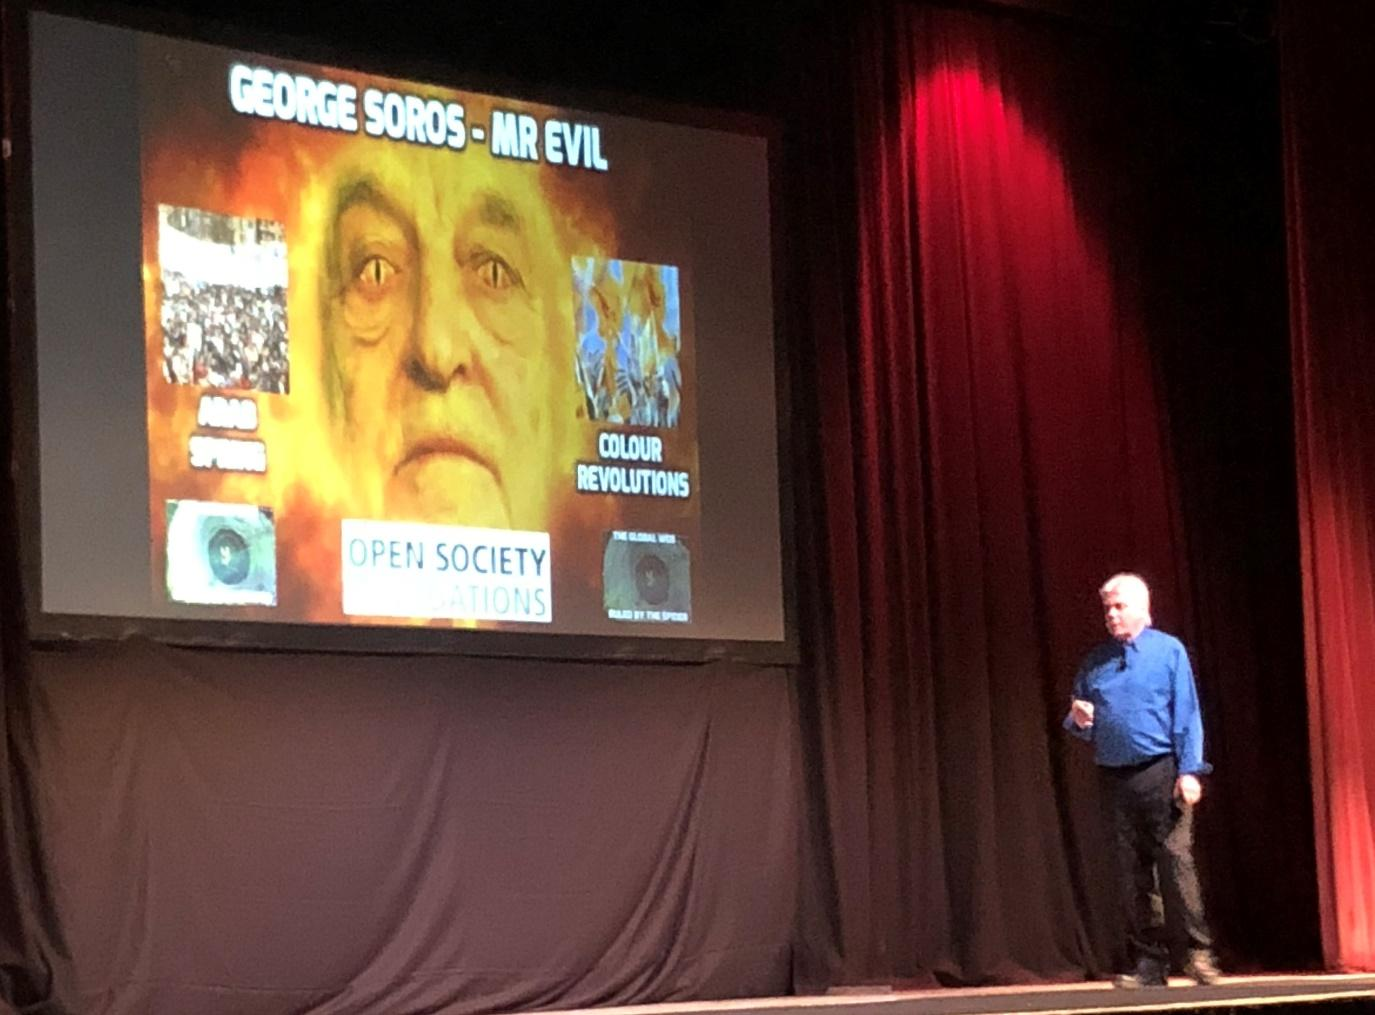 """A photo taken at the 2018 David Icke tour. David Icke stands on a stage in Southport wearing a blue shirt, black trousers and a pair of brown boots. The screen at the back of the stage shows a photo of George Soros mocked up as the centre of a burning eye, his eyes are edited to look like lizard's eyes and his face has been coloured yellow. The heading says """"George Soros - Mr Evil"""""""